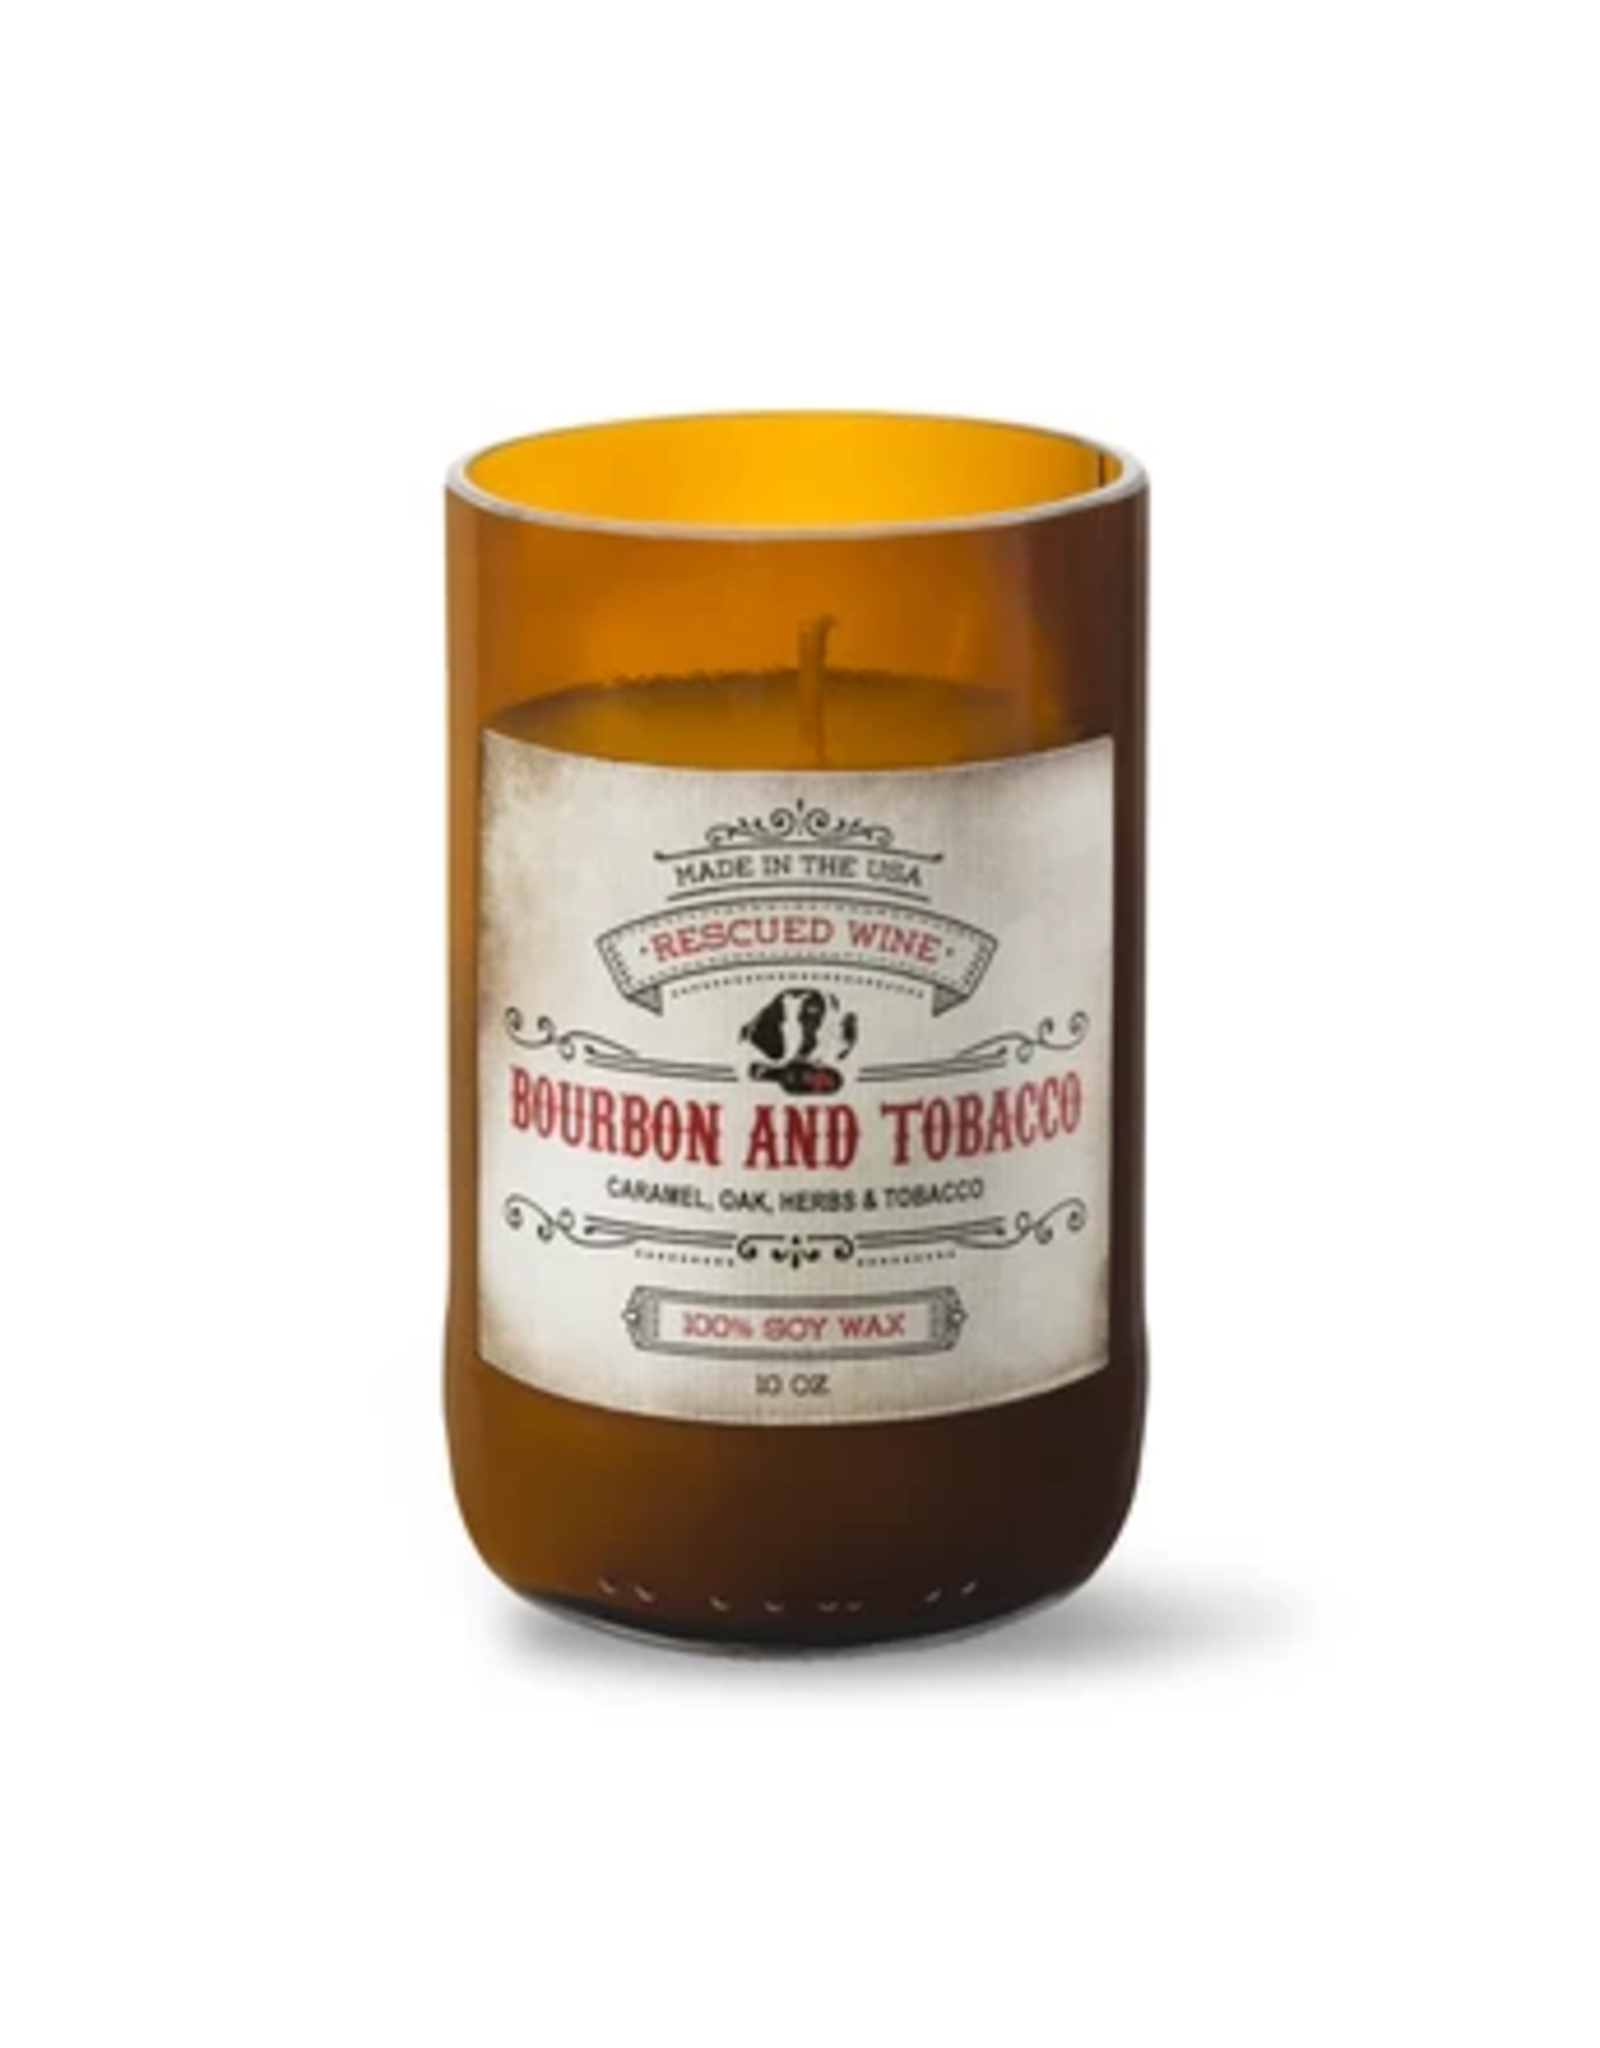 Bourbon and Tobacco Candle, USA